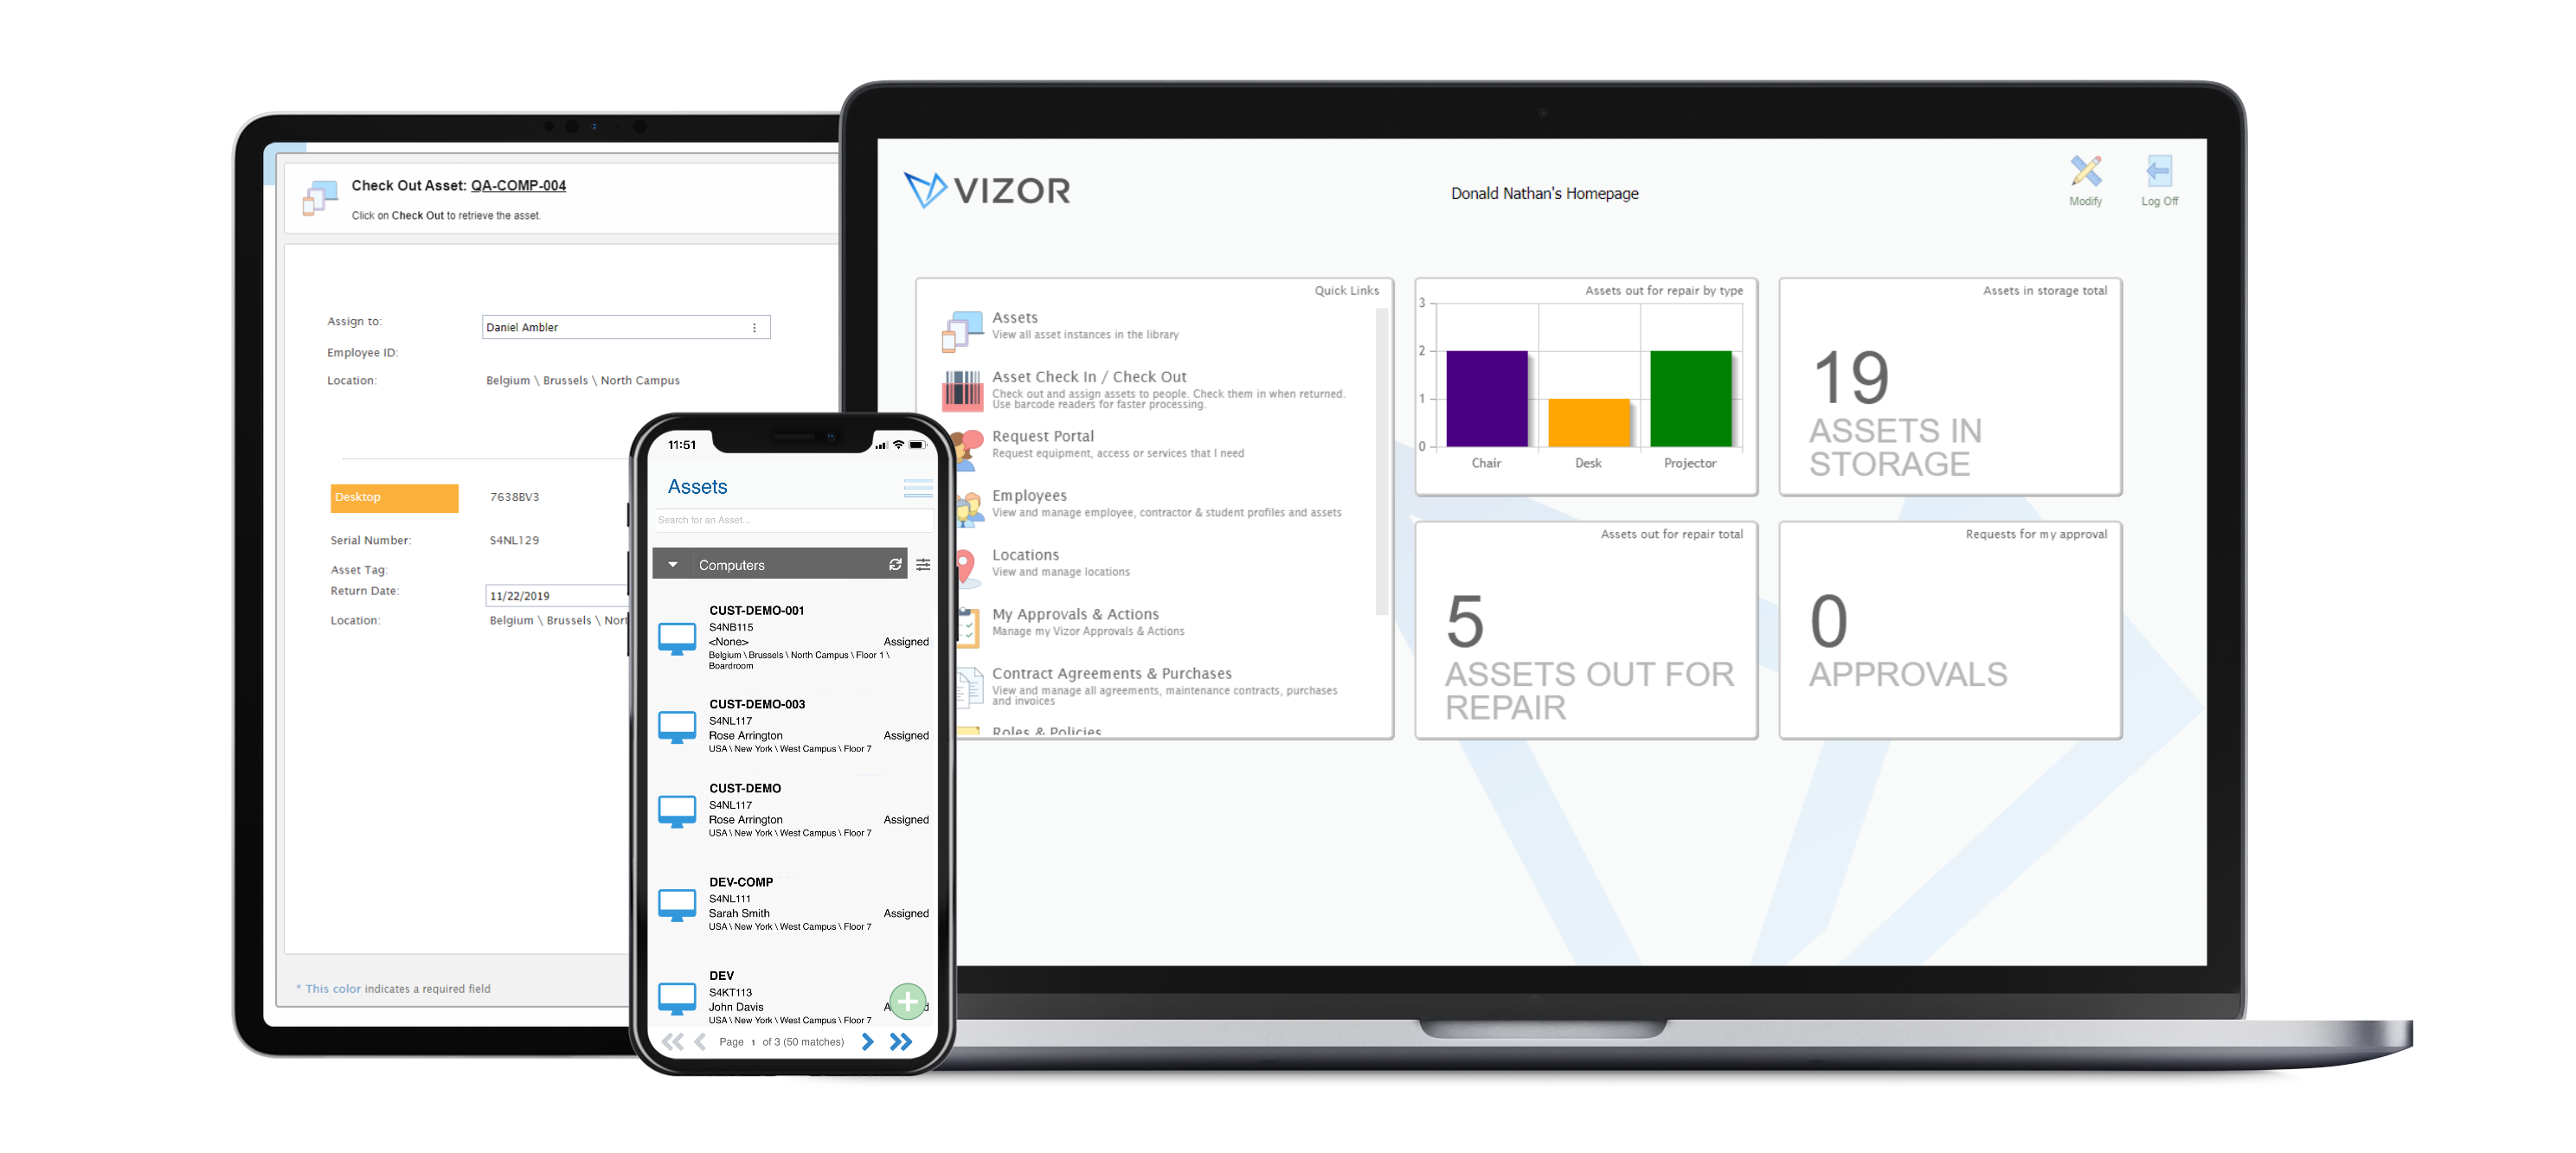 Images of the new VIZOR look